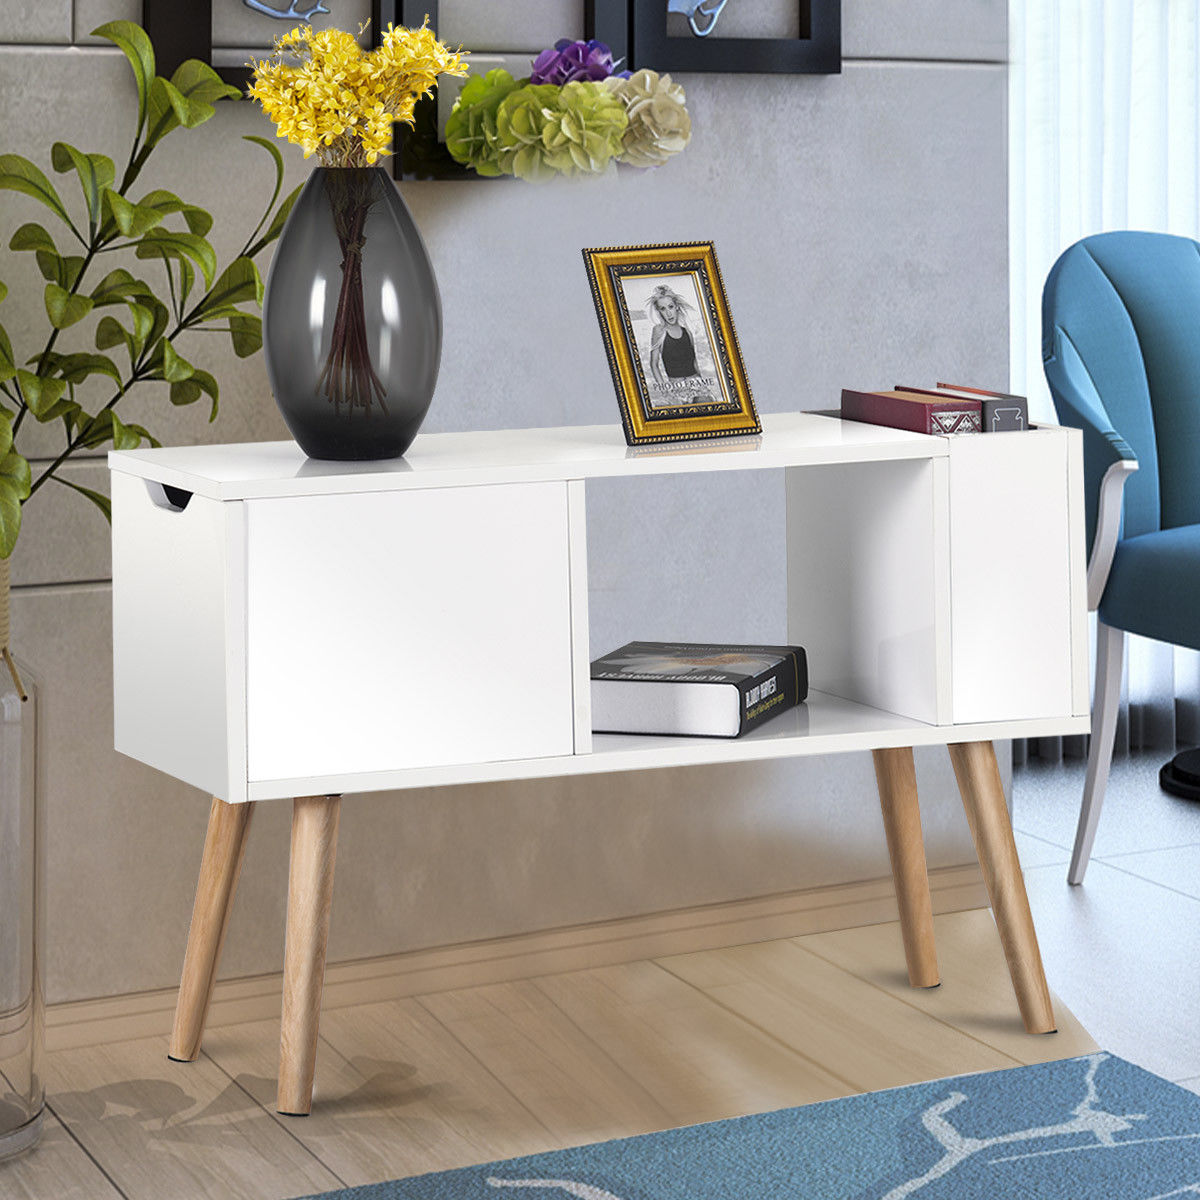 Costway Modern Side Table End Table for Bedroom Living Room Sitting Room Drawer White